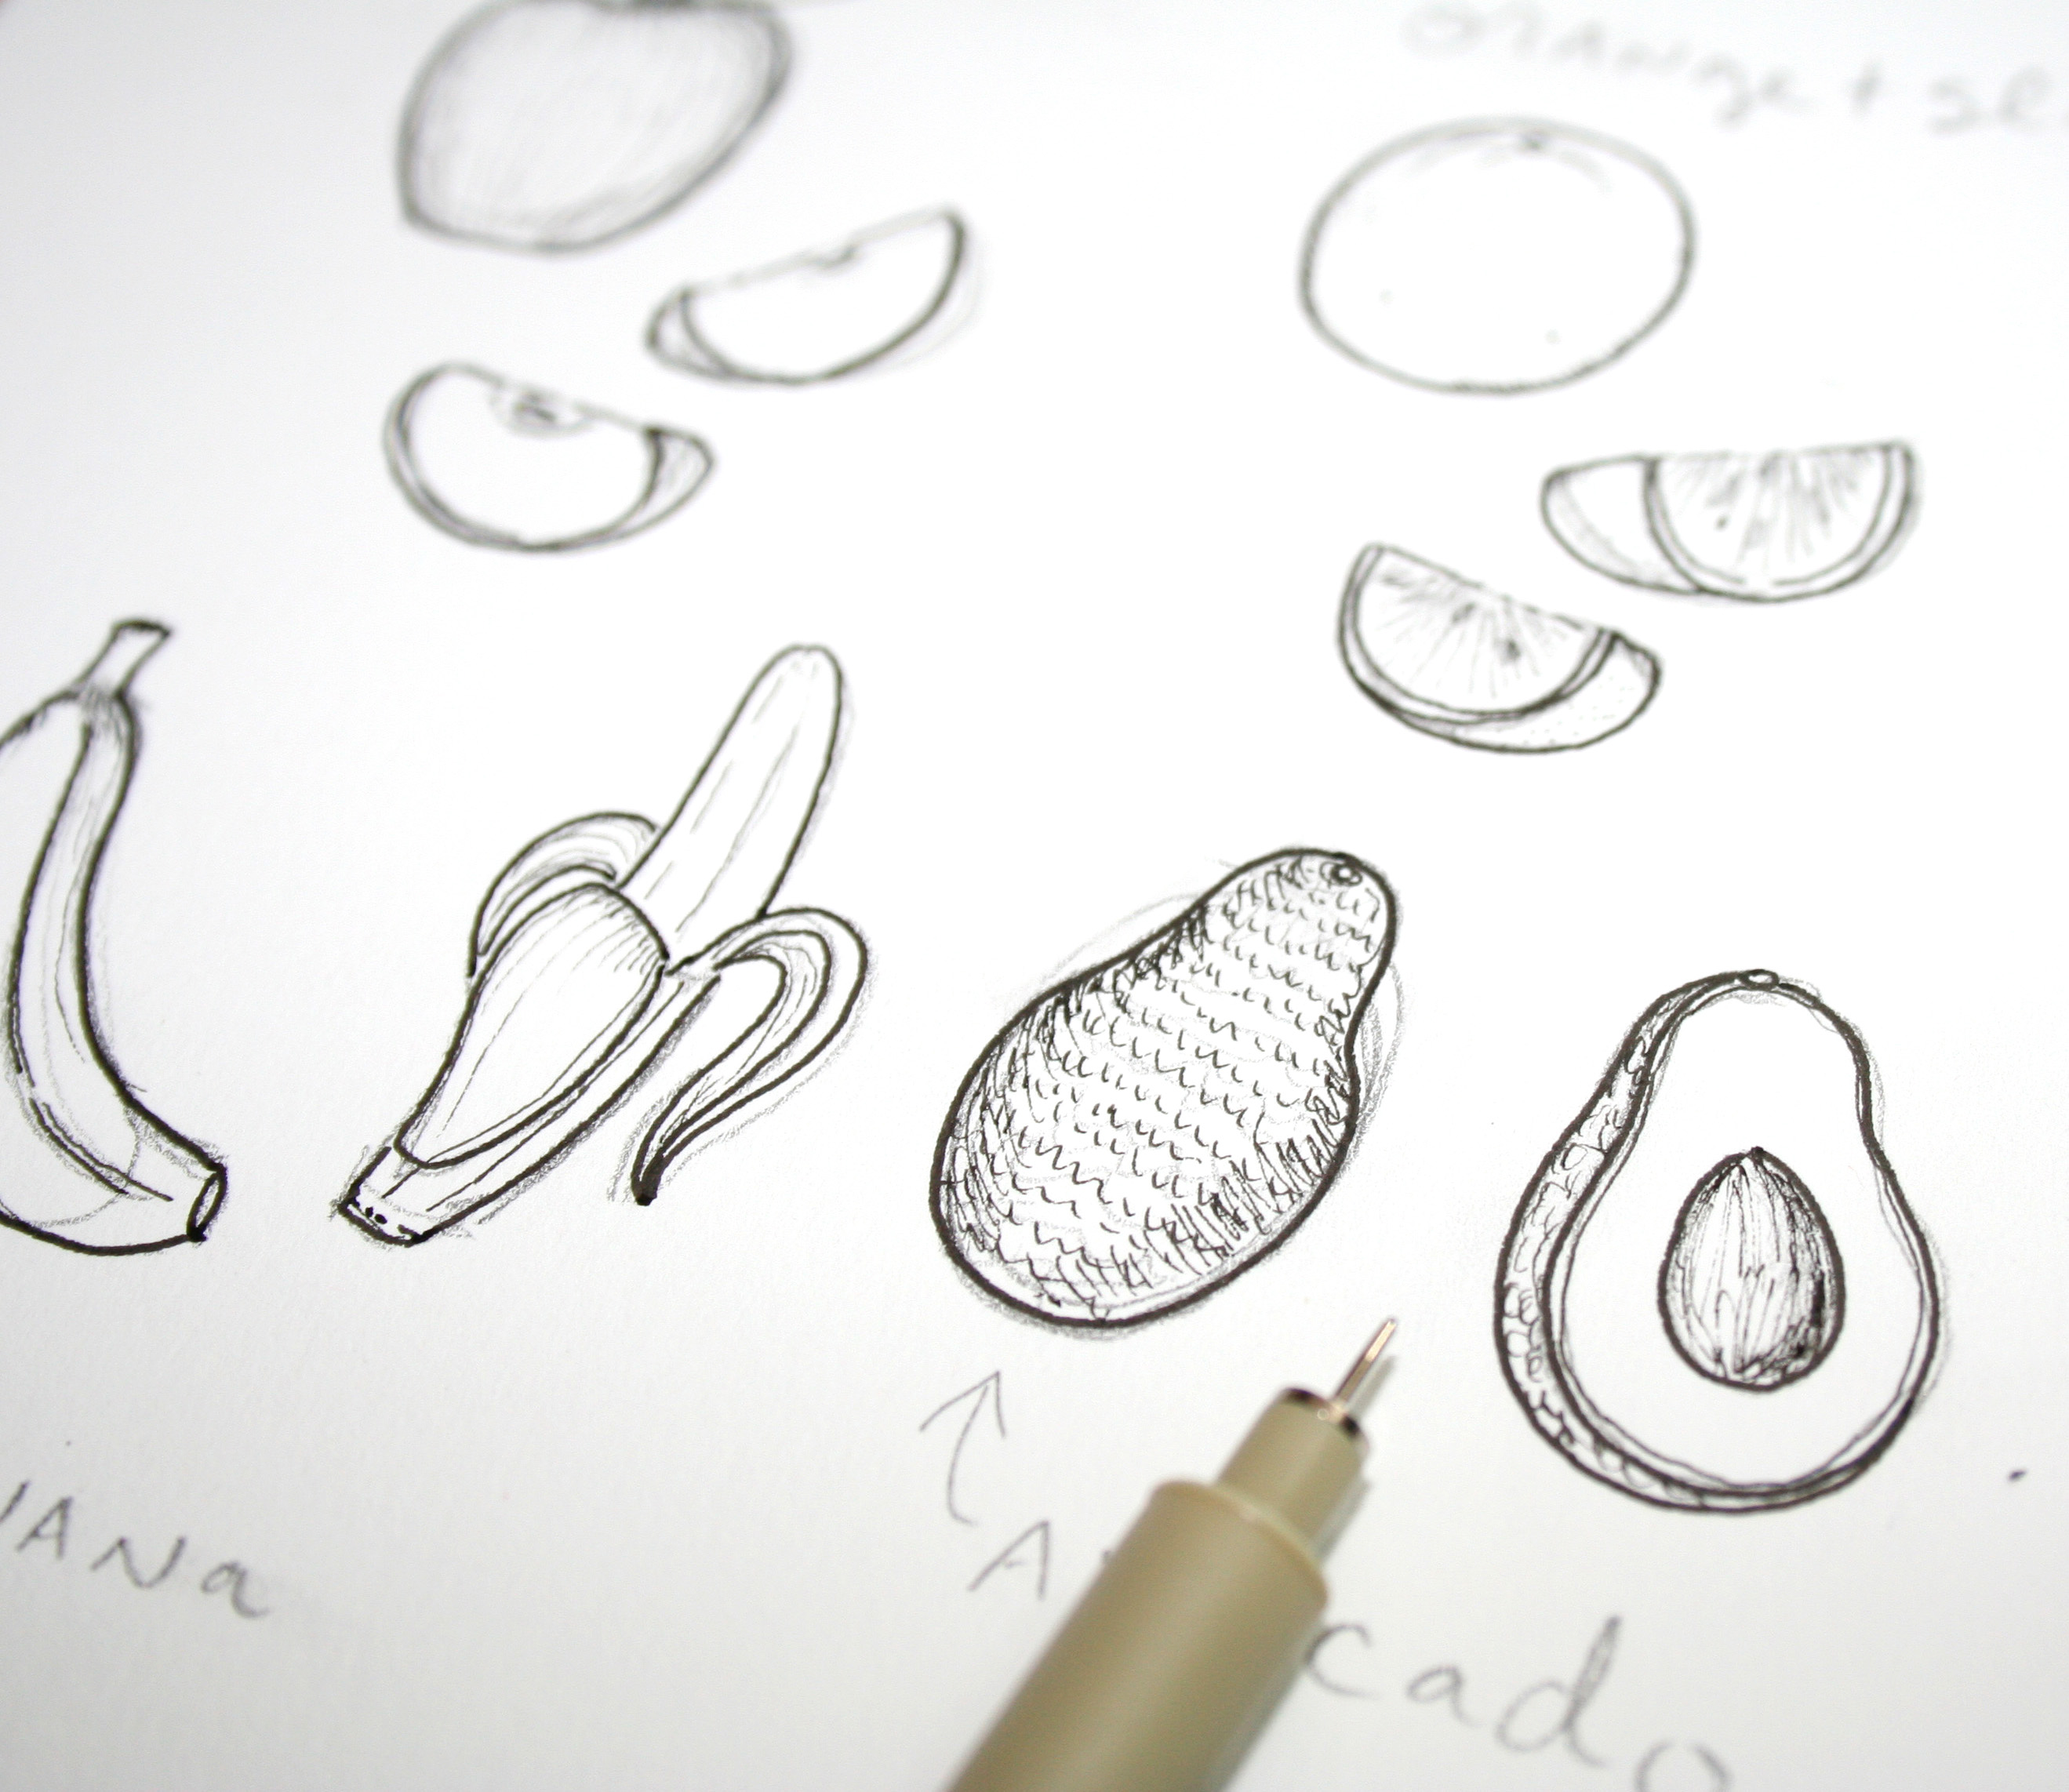 Drawn vegetable line art Your Labor: pen Switch to